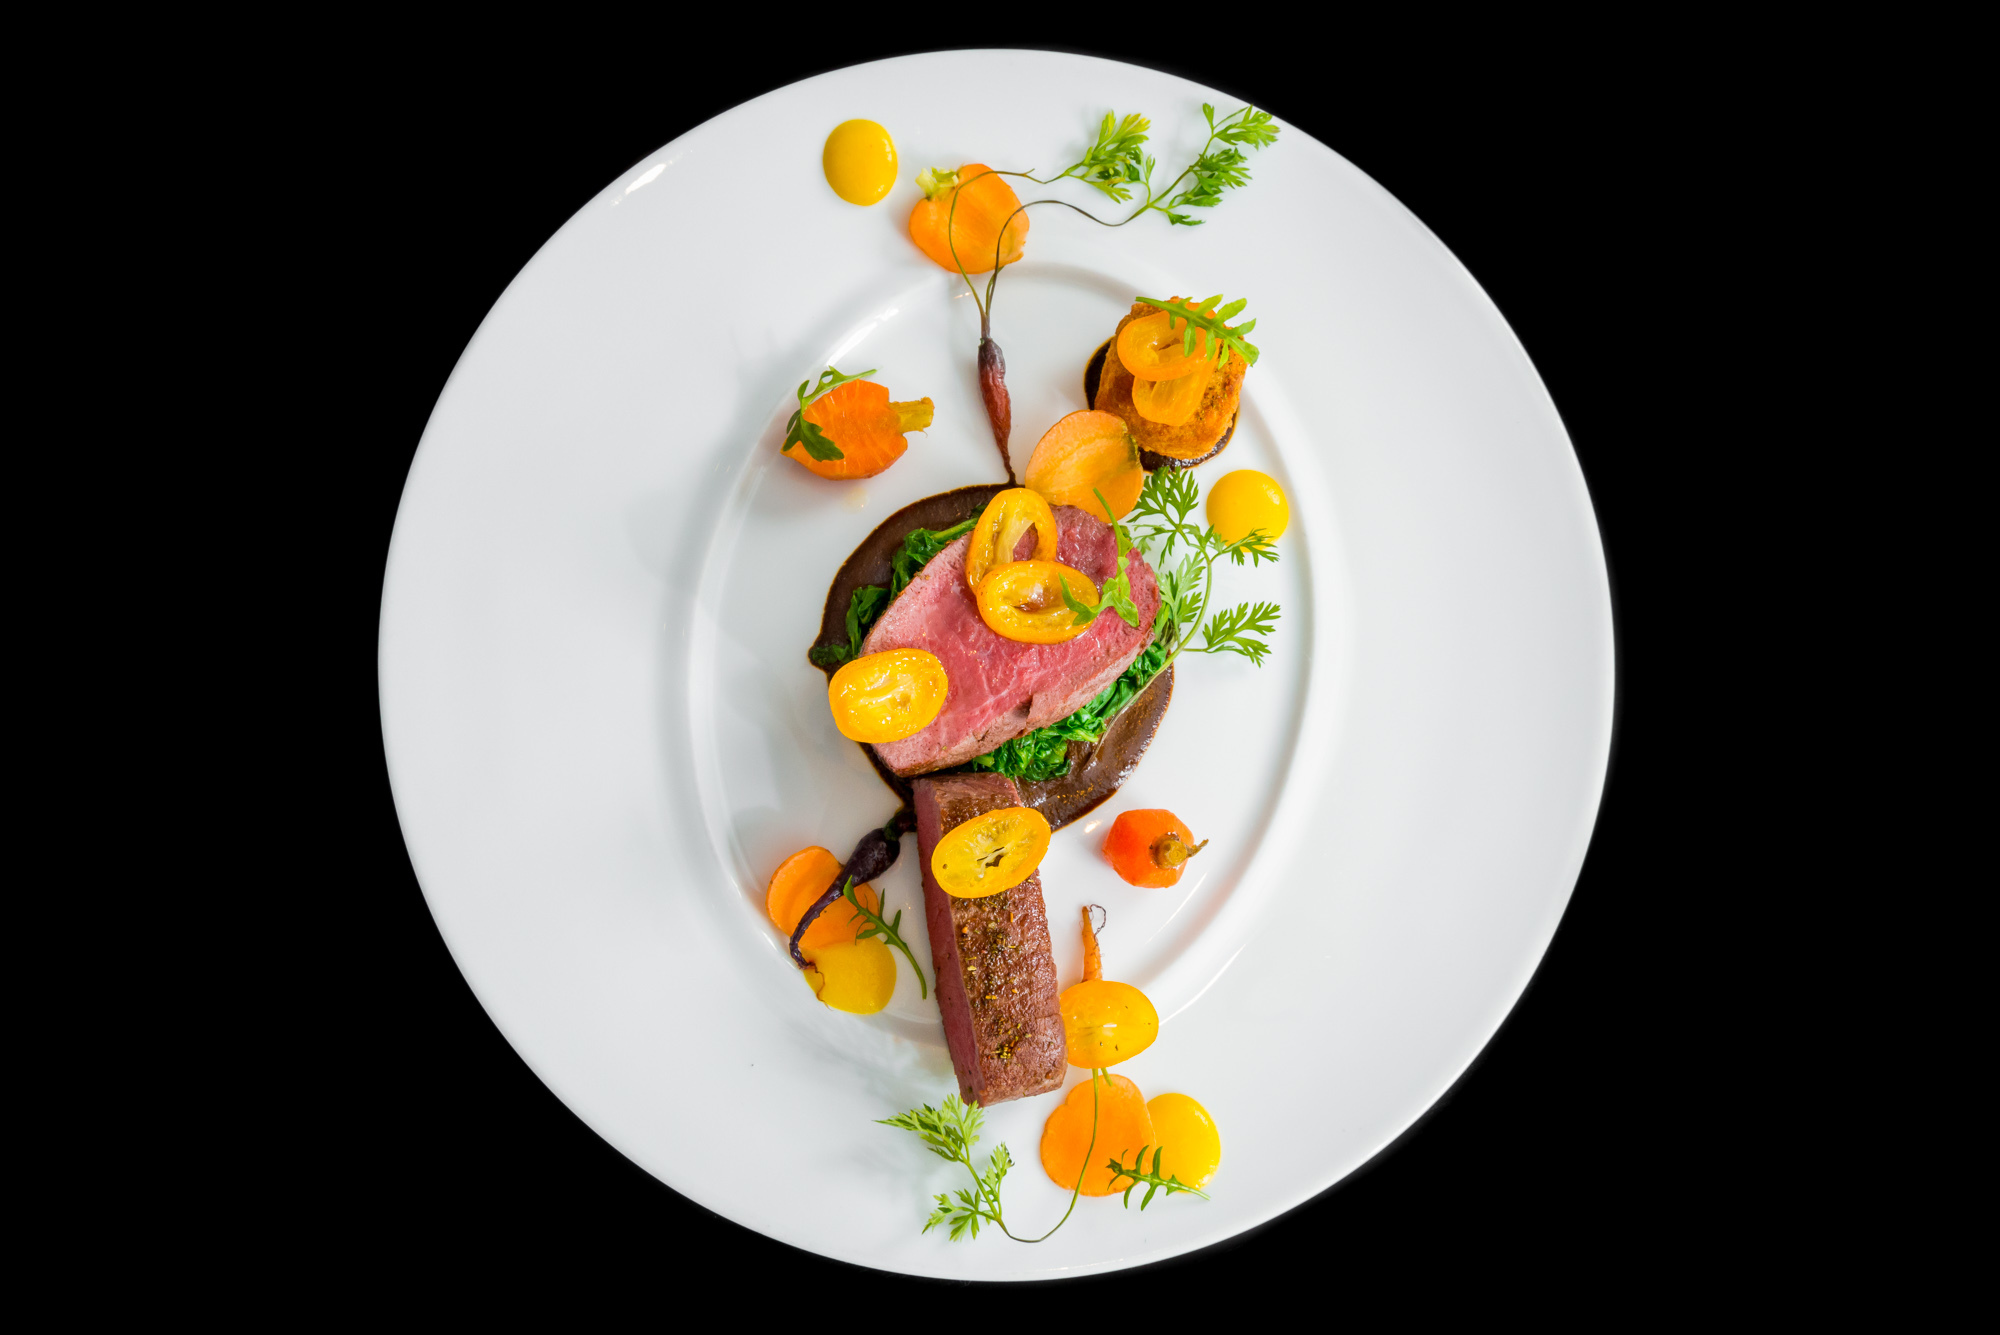 C2 Photography. Aspen, Colorado. Food Photography 12.